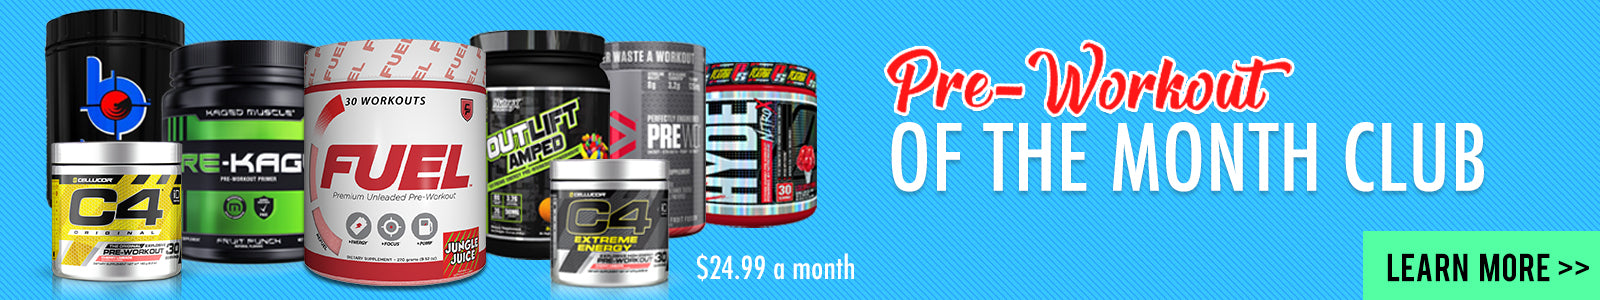 pre workout of the month club